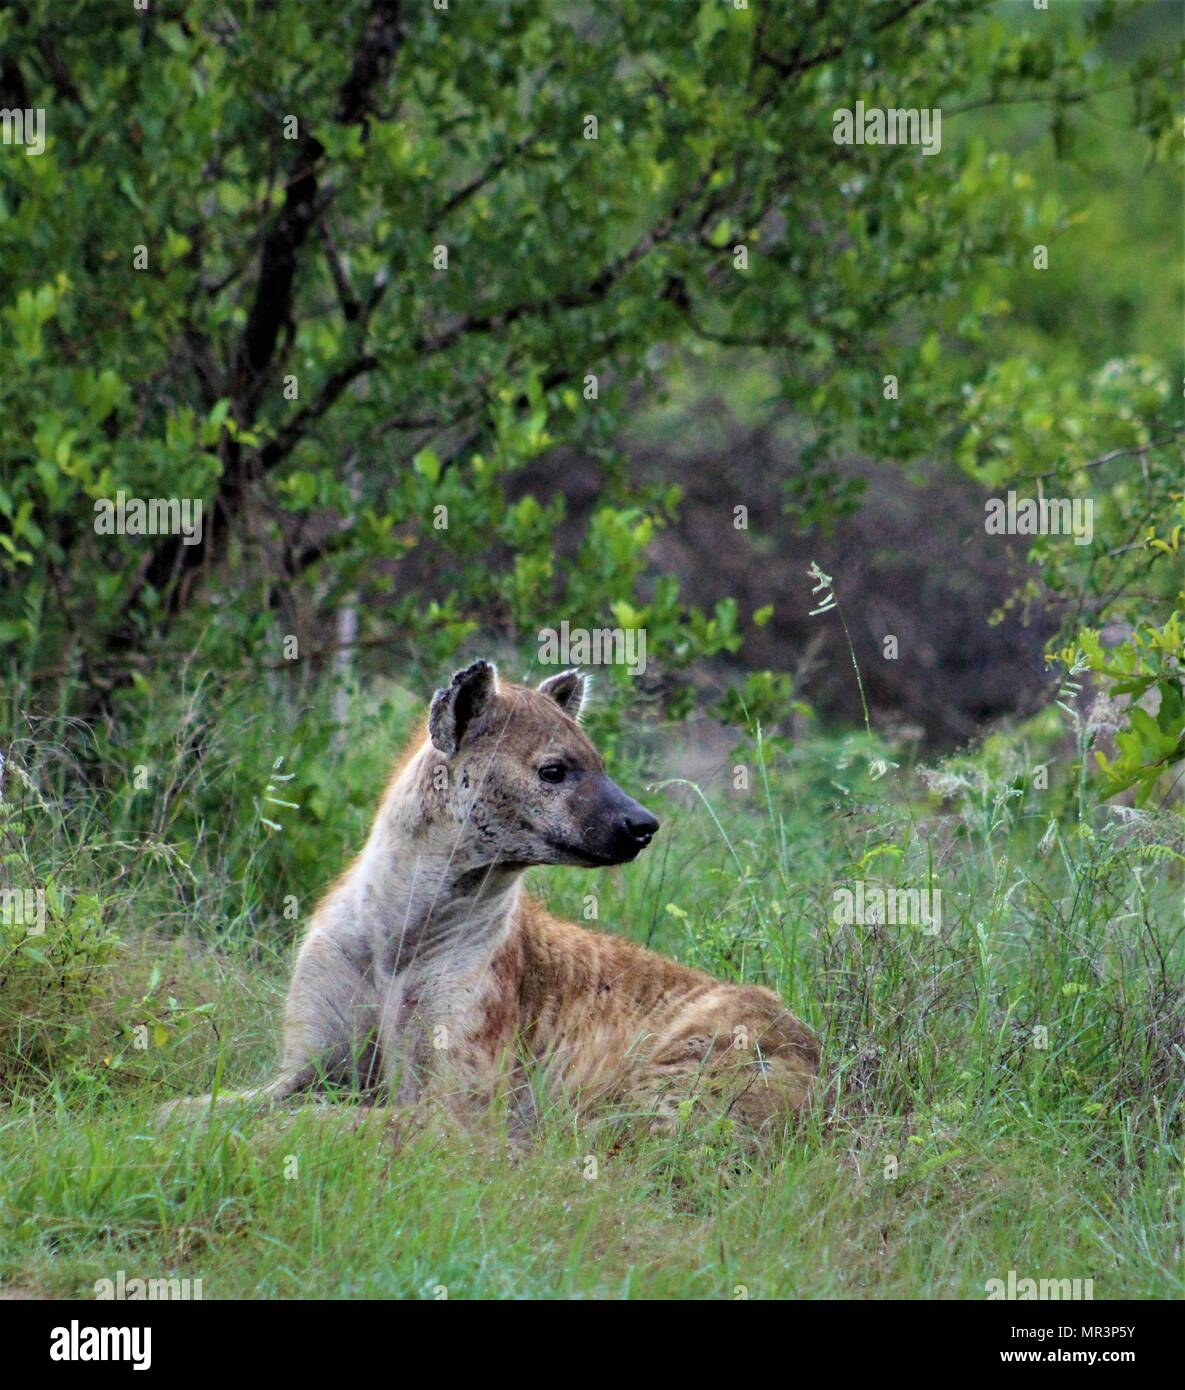 Hyena, Kruger National Park, South Africa - Stock Image